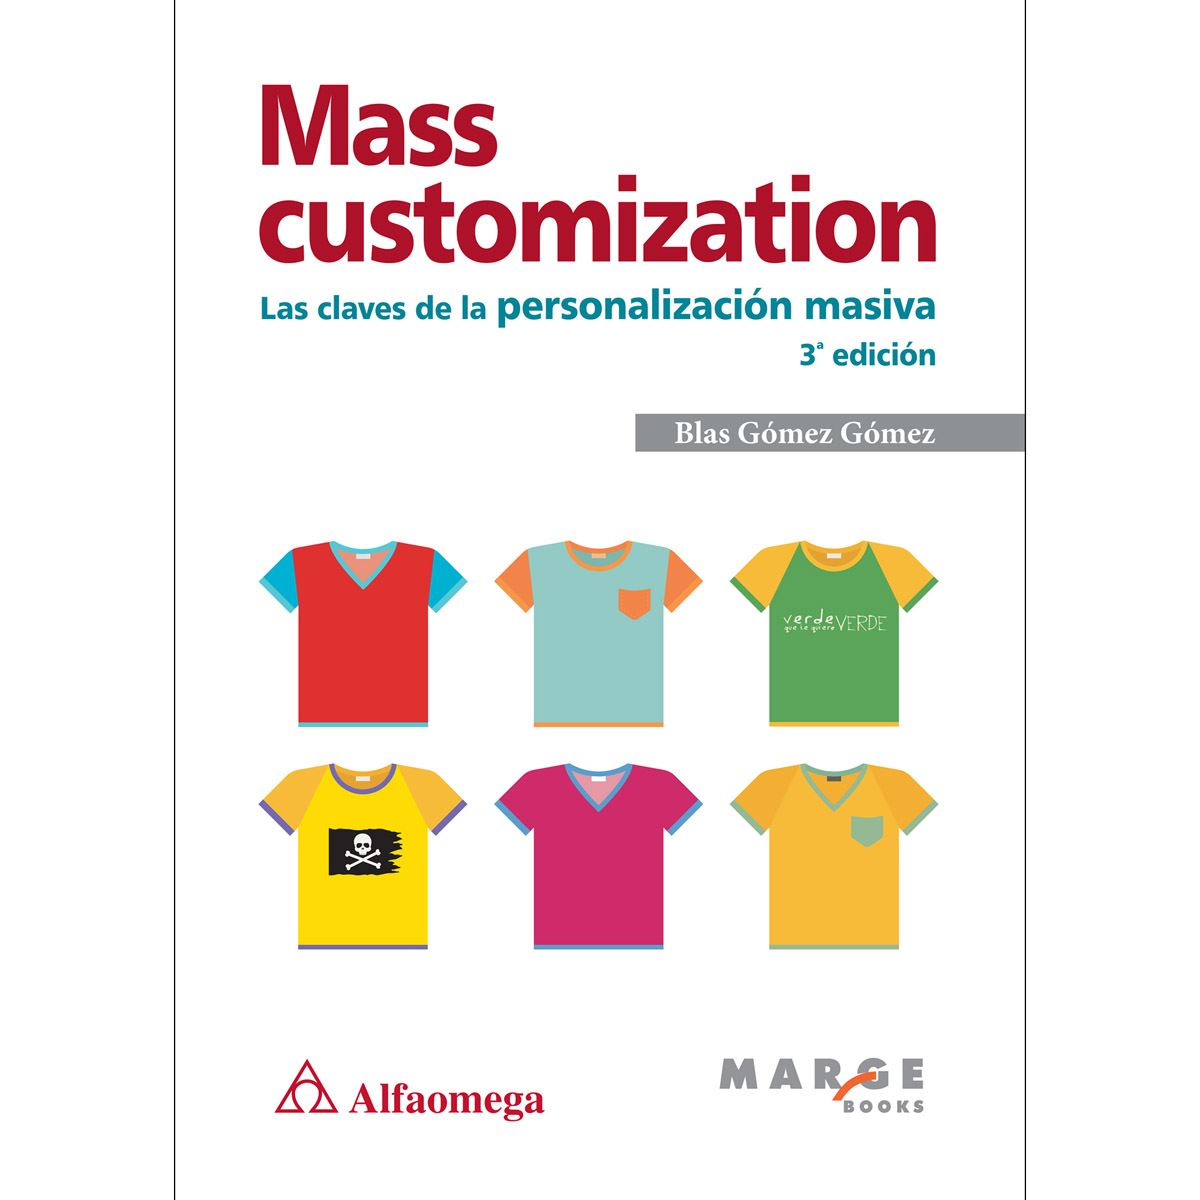 Mass customization Libro - Sanborns